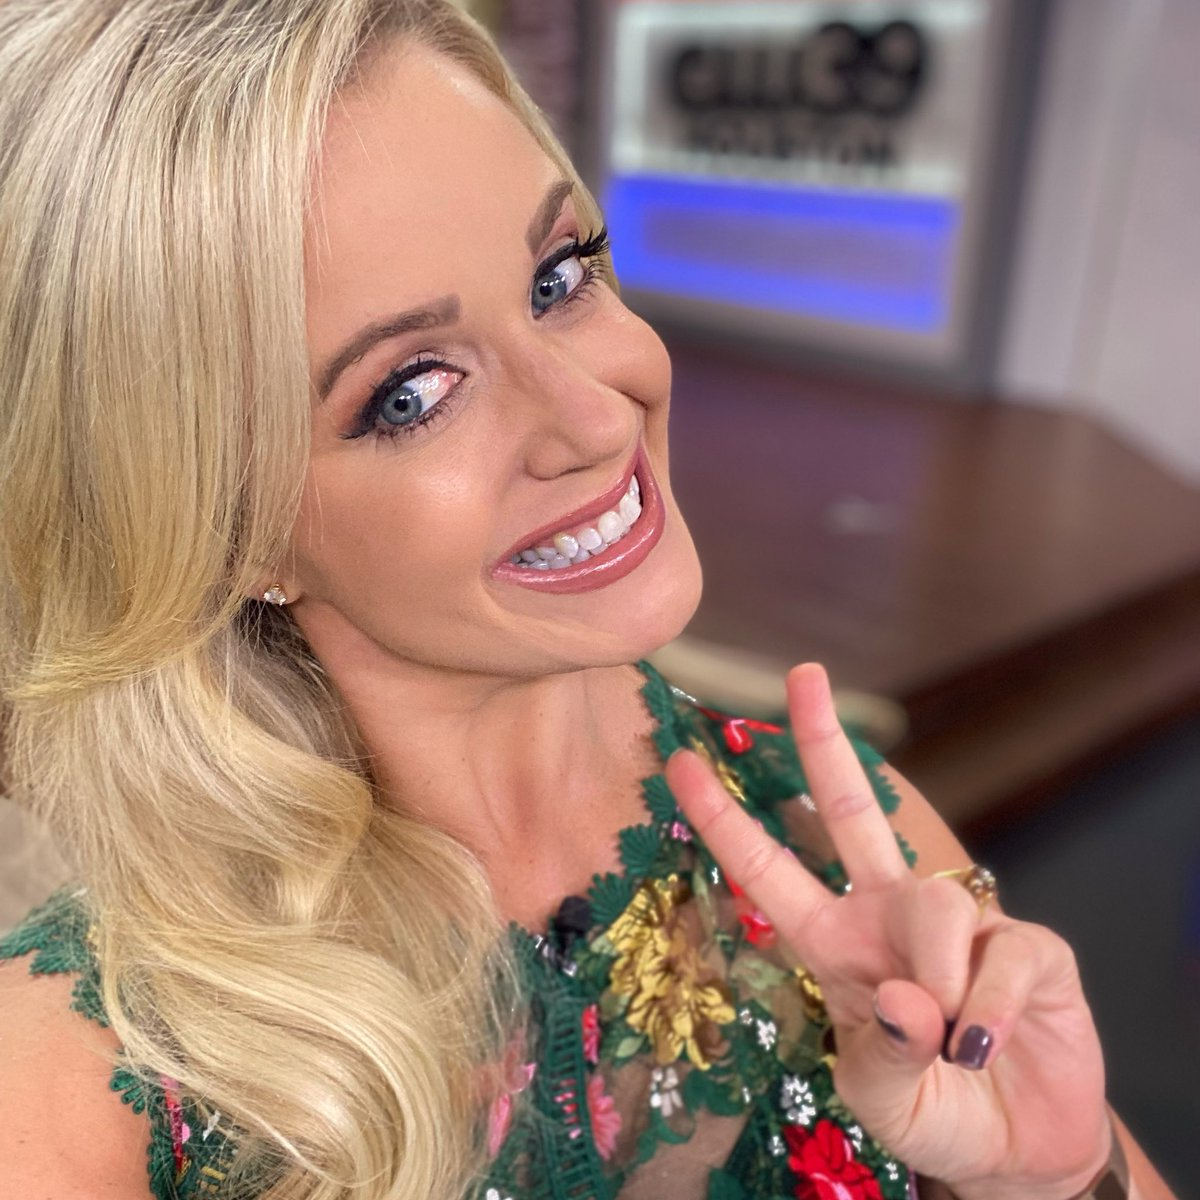 ‼️BREAKING NEWS... I'm officially on vacation for a week! 💁🏼♀️ Out of office is on, time to unplug 🔌 & have some fun in the ☀️!   See you next Wednesday on @cw39houston. Don't miss me too much! 😉  #wheresmaggie #vacay #vacationmode #outofoffice #peaceout https://t.co/XhPP3PP1Ie